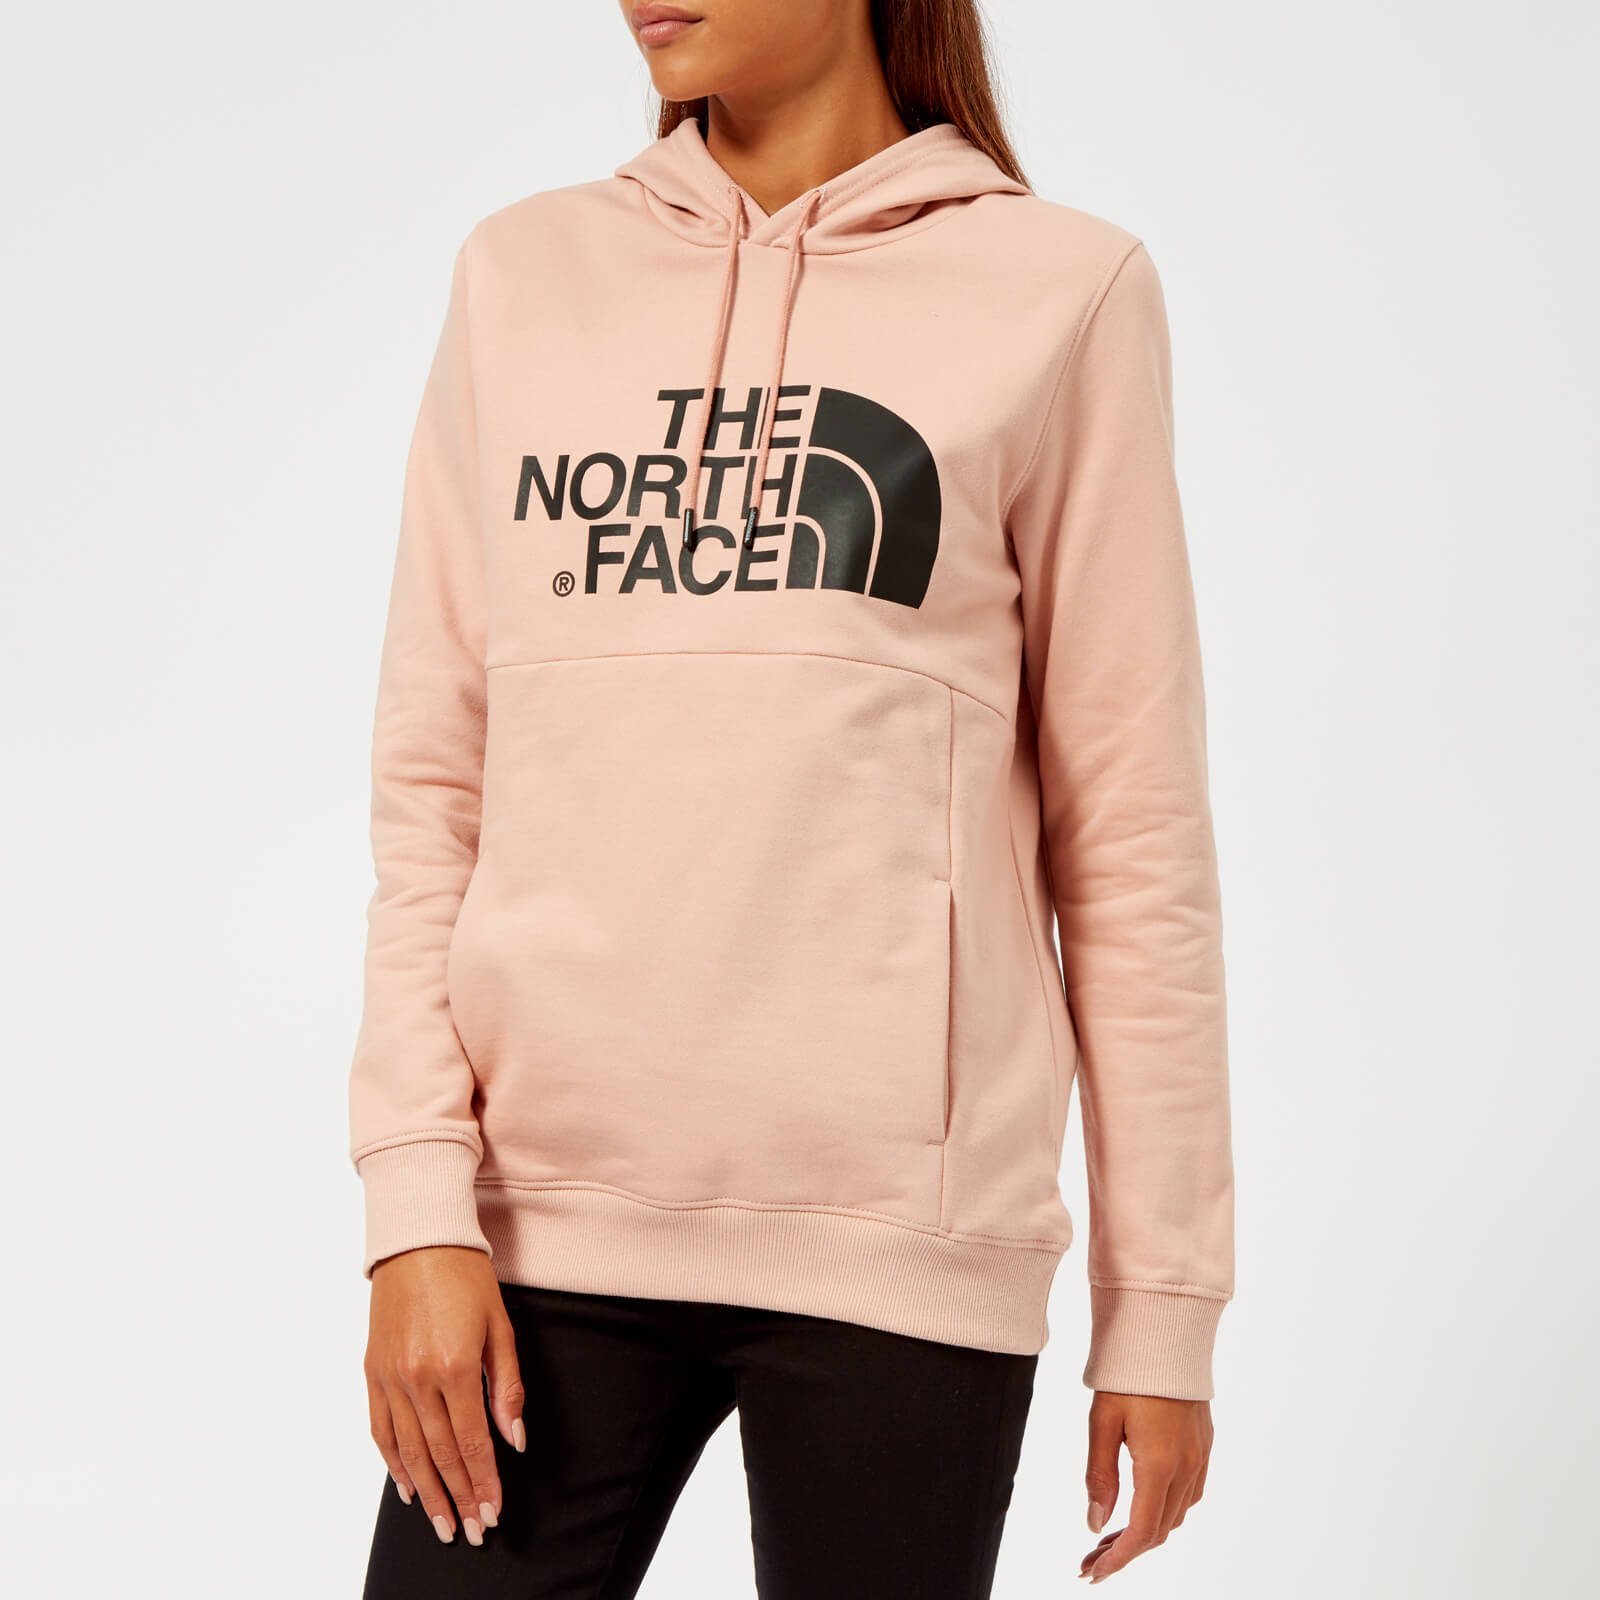 300a756ac698 The North Face Women s Drew Hoody - Misty Rose Womens Clothing ...